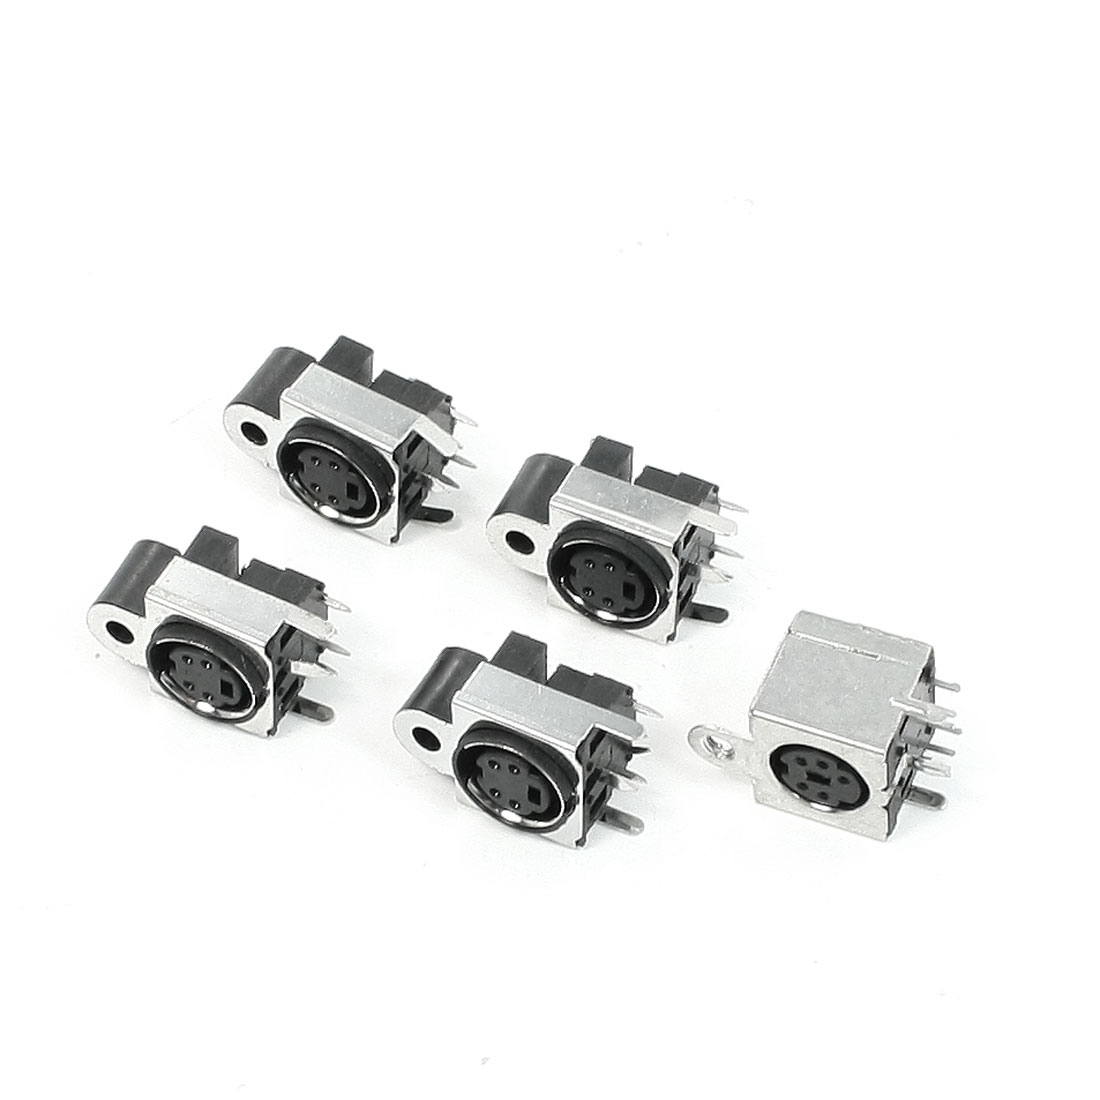 Metallic Housing PCB Mounting DIN 4 Pin Female S-video Adapter Sockets 5 Pcs